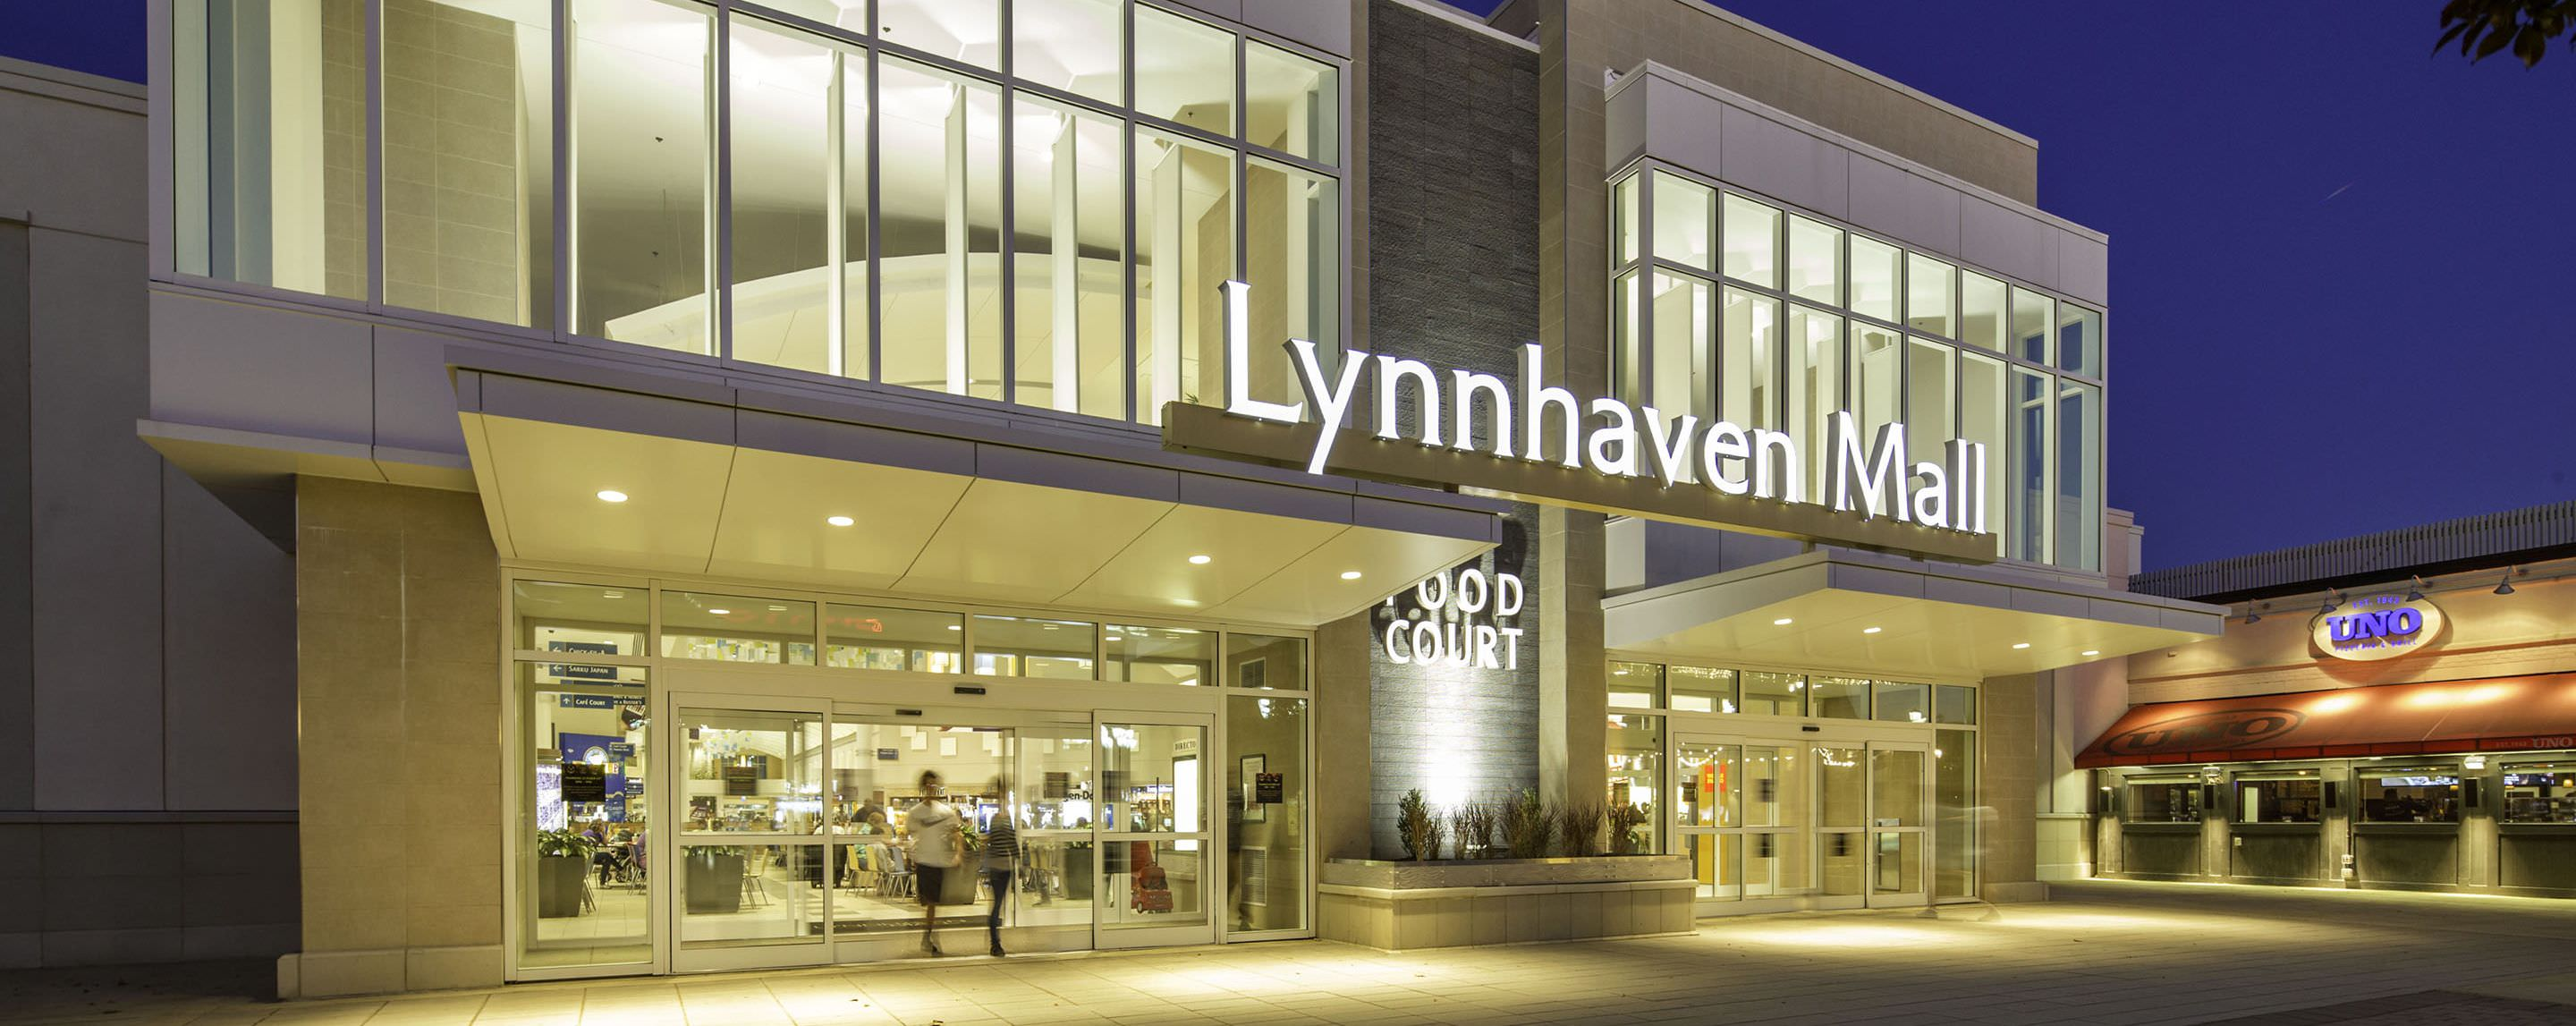 Solar panels sit atop the parking deck of a GGP property, transforming sunlight into energy and paving the way for a greener future.